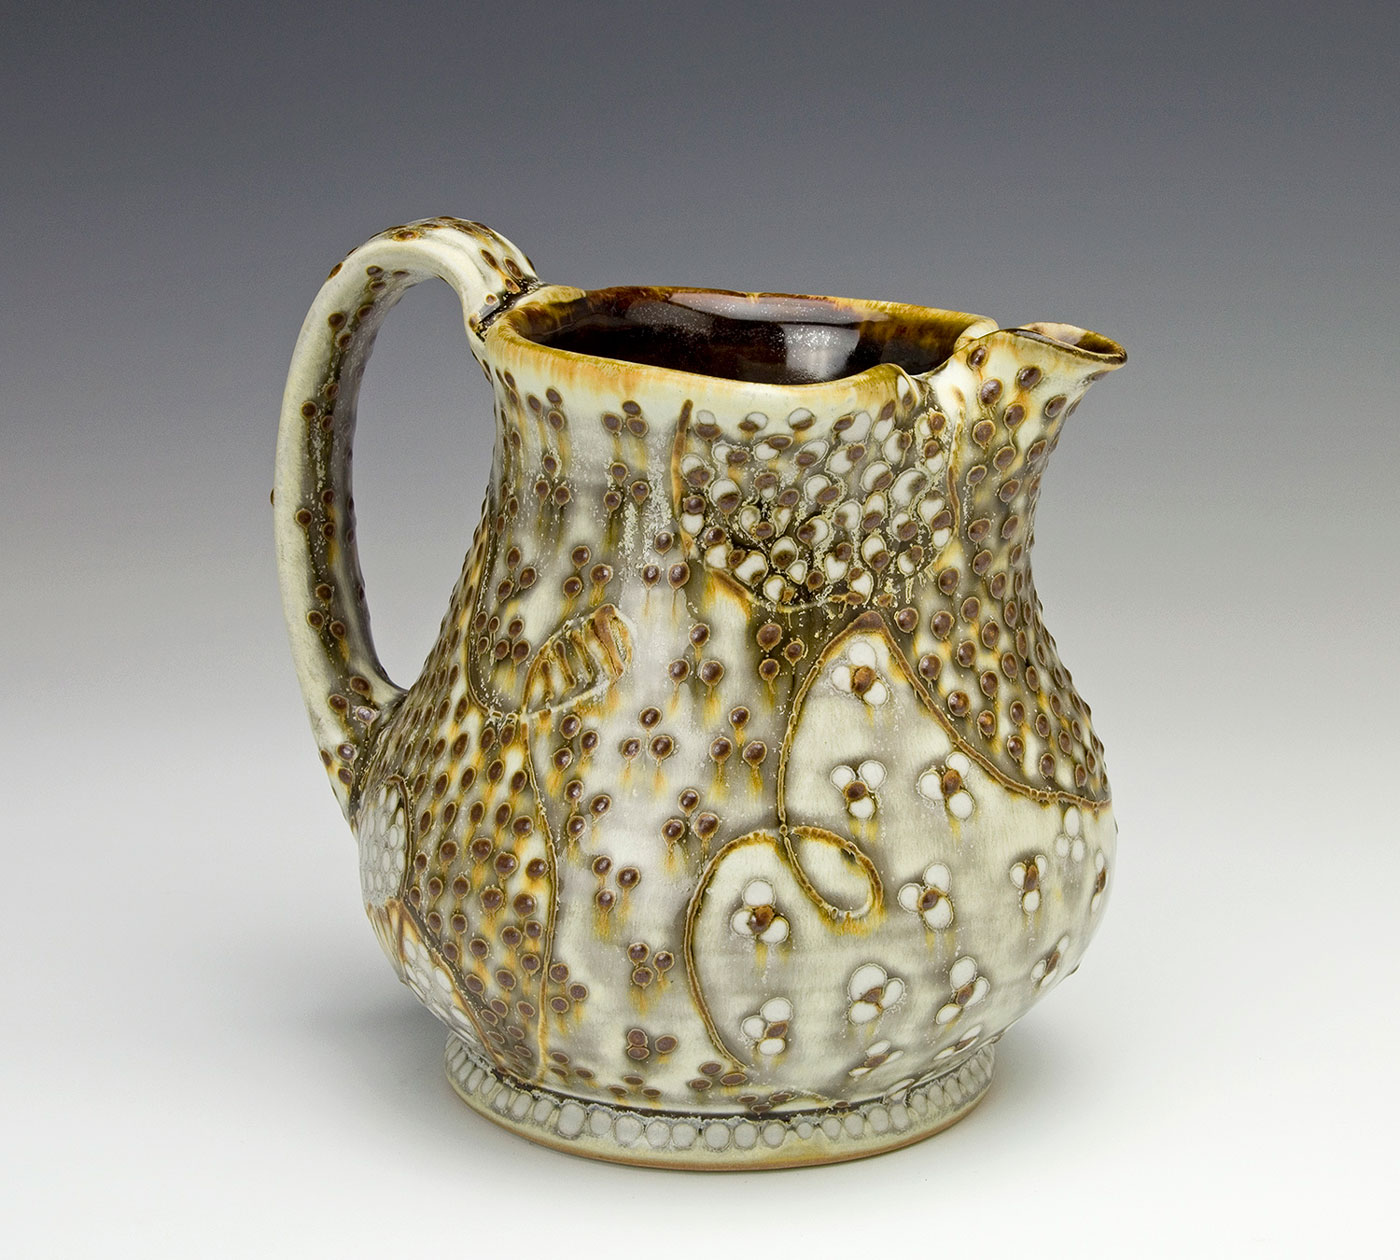 Pattern-Medley-Pitcher-Samantha-Henneke-Seagrove-North-Carolina.jpg